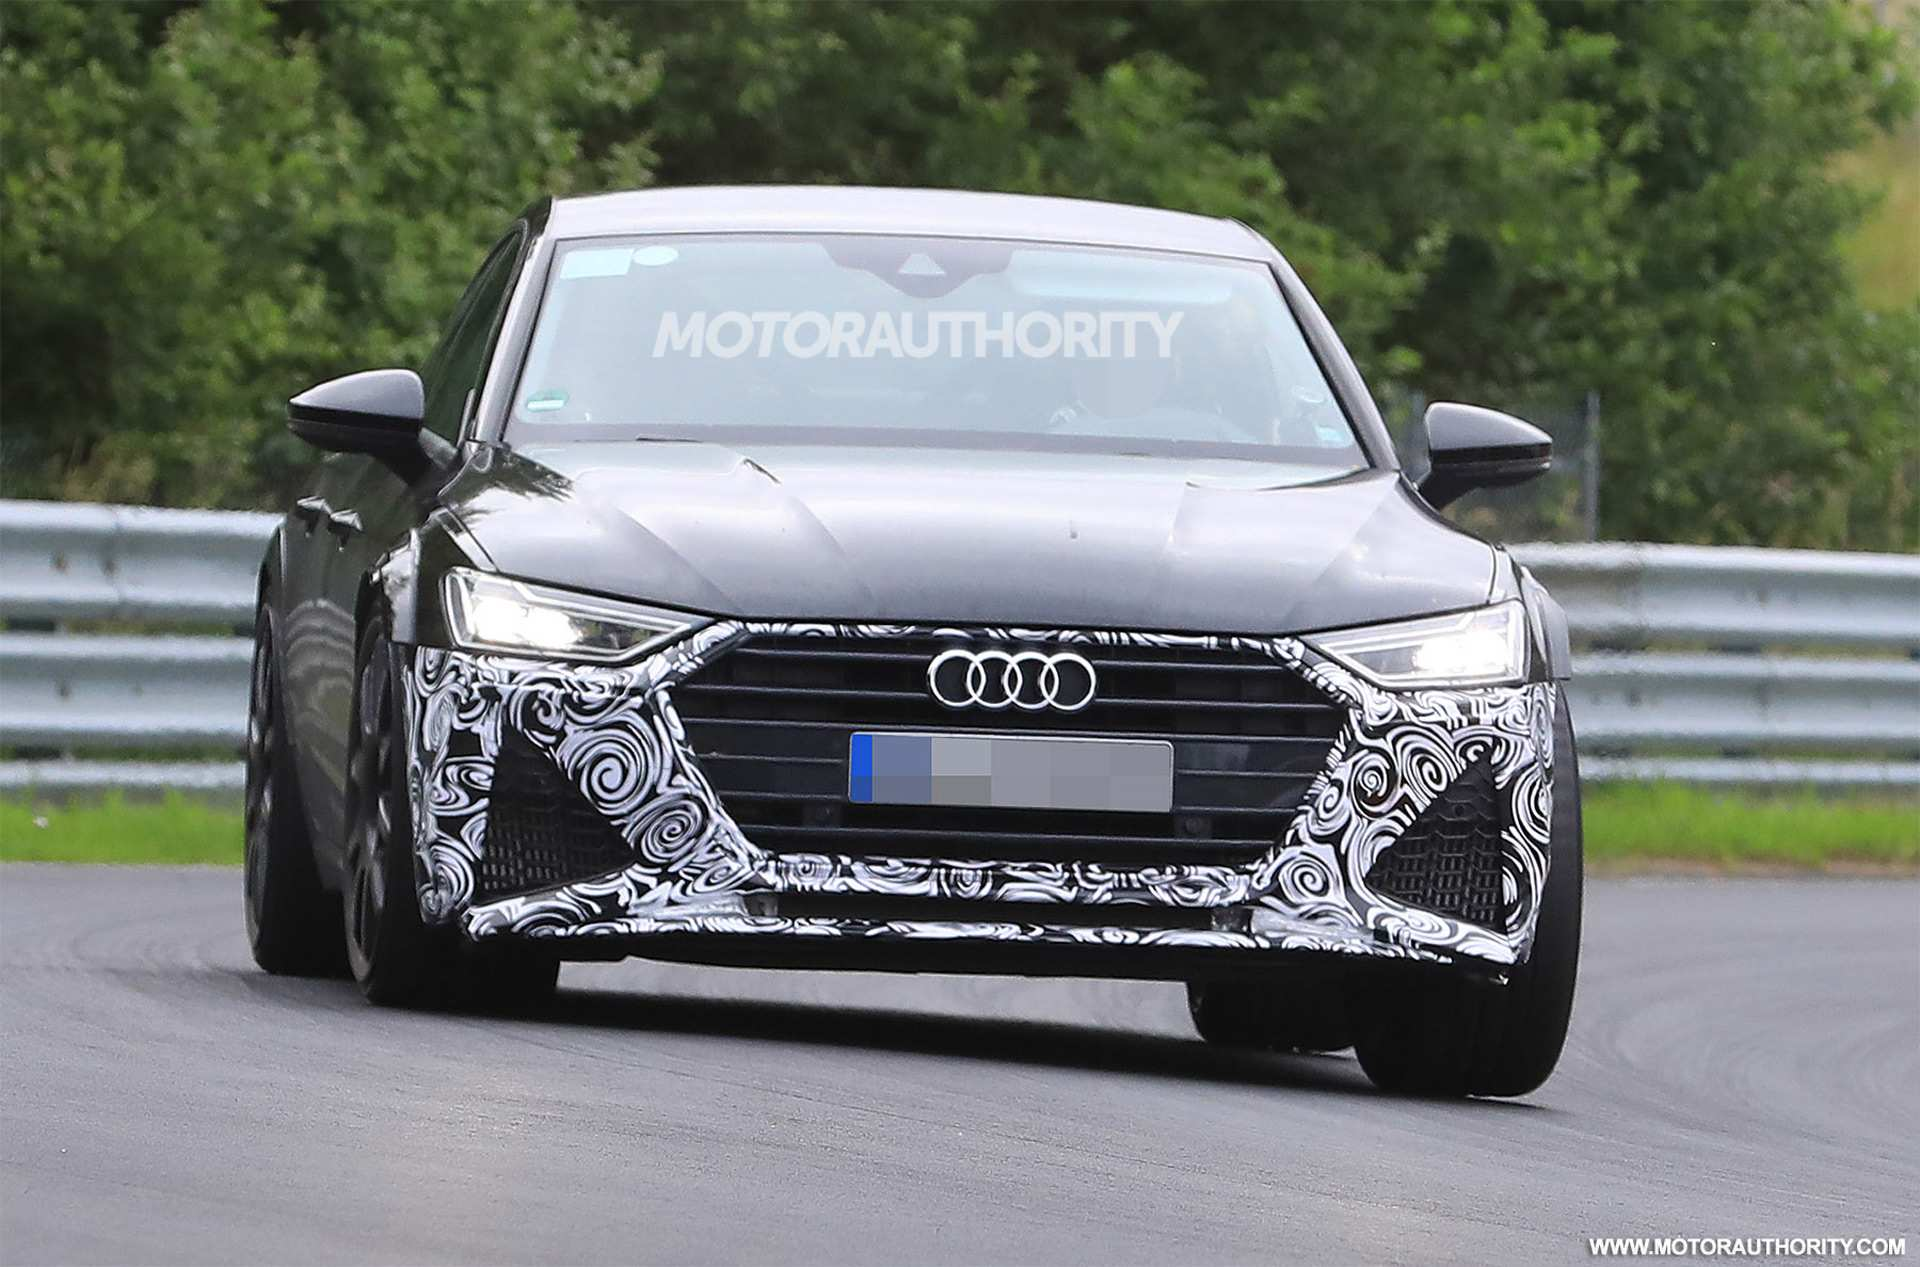 25 All New Audi Cars 2020 Configurations for Audi Cars 2020